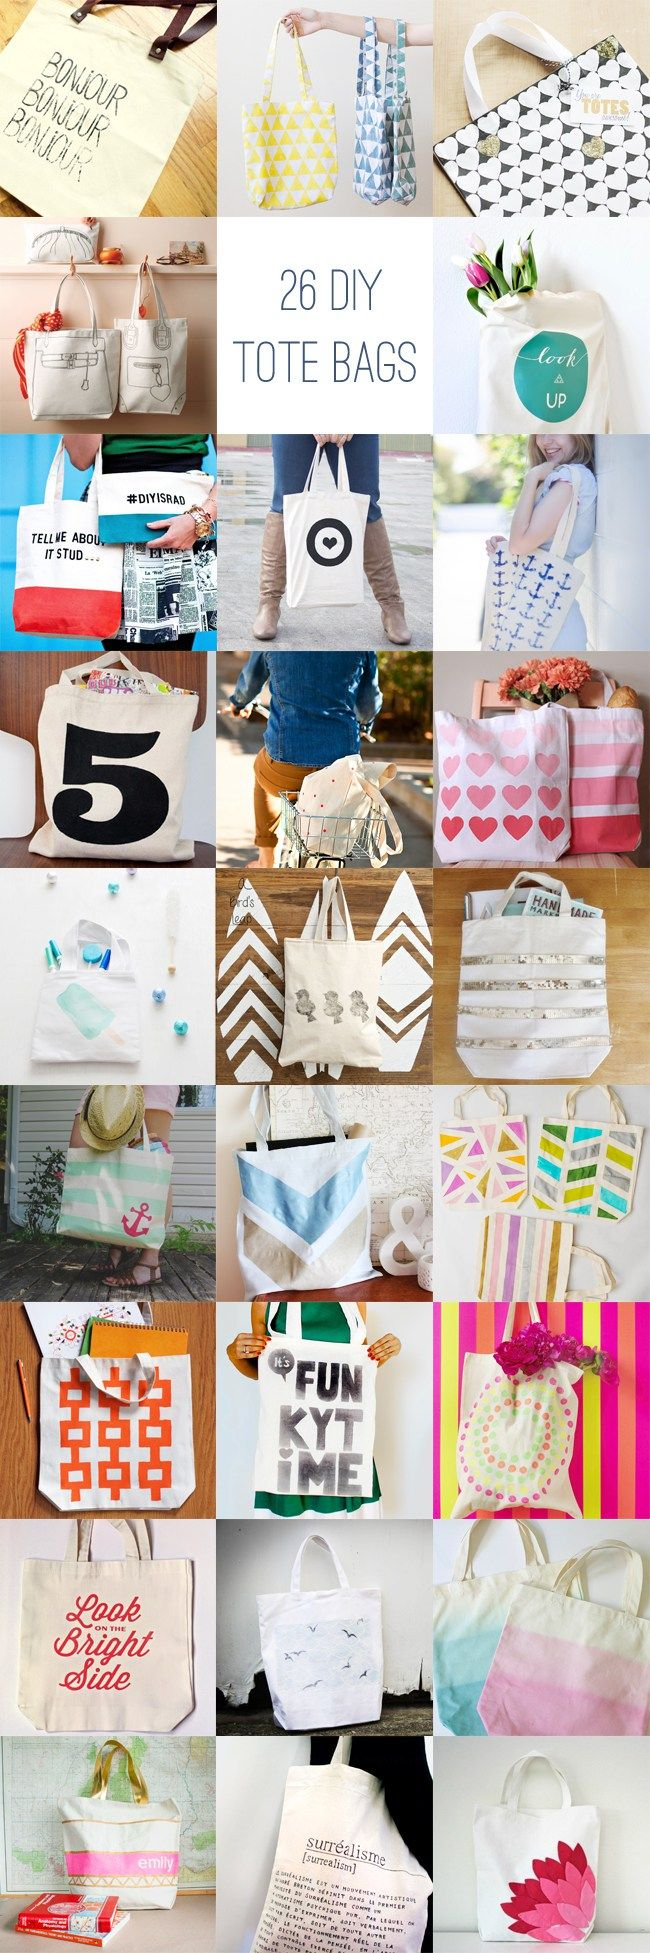 26 DIY Tote Bags | HelloGlow.co